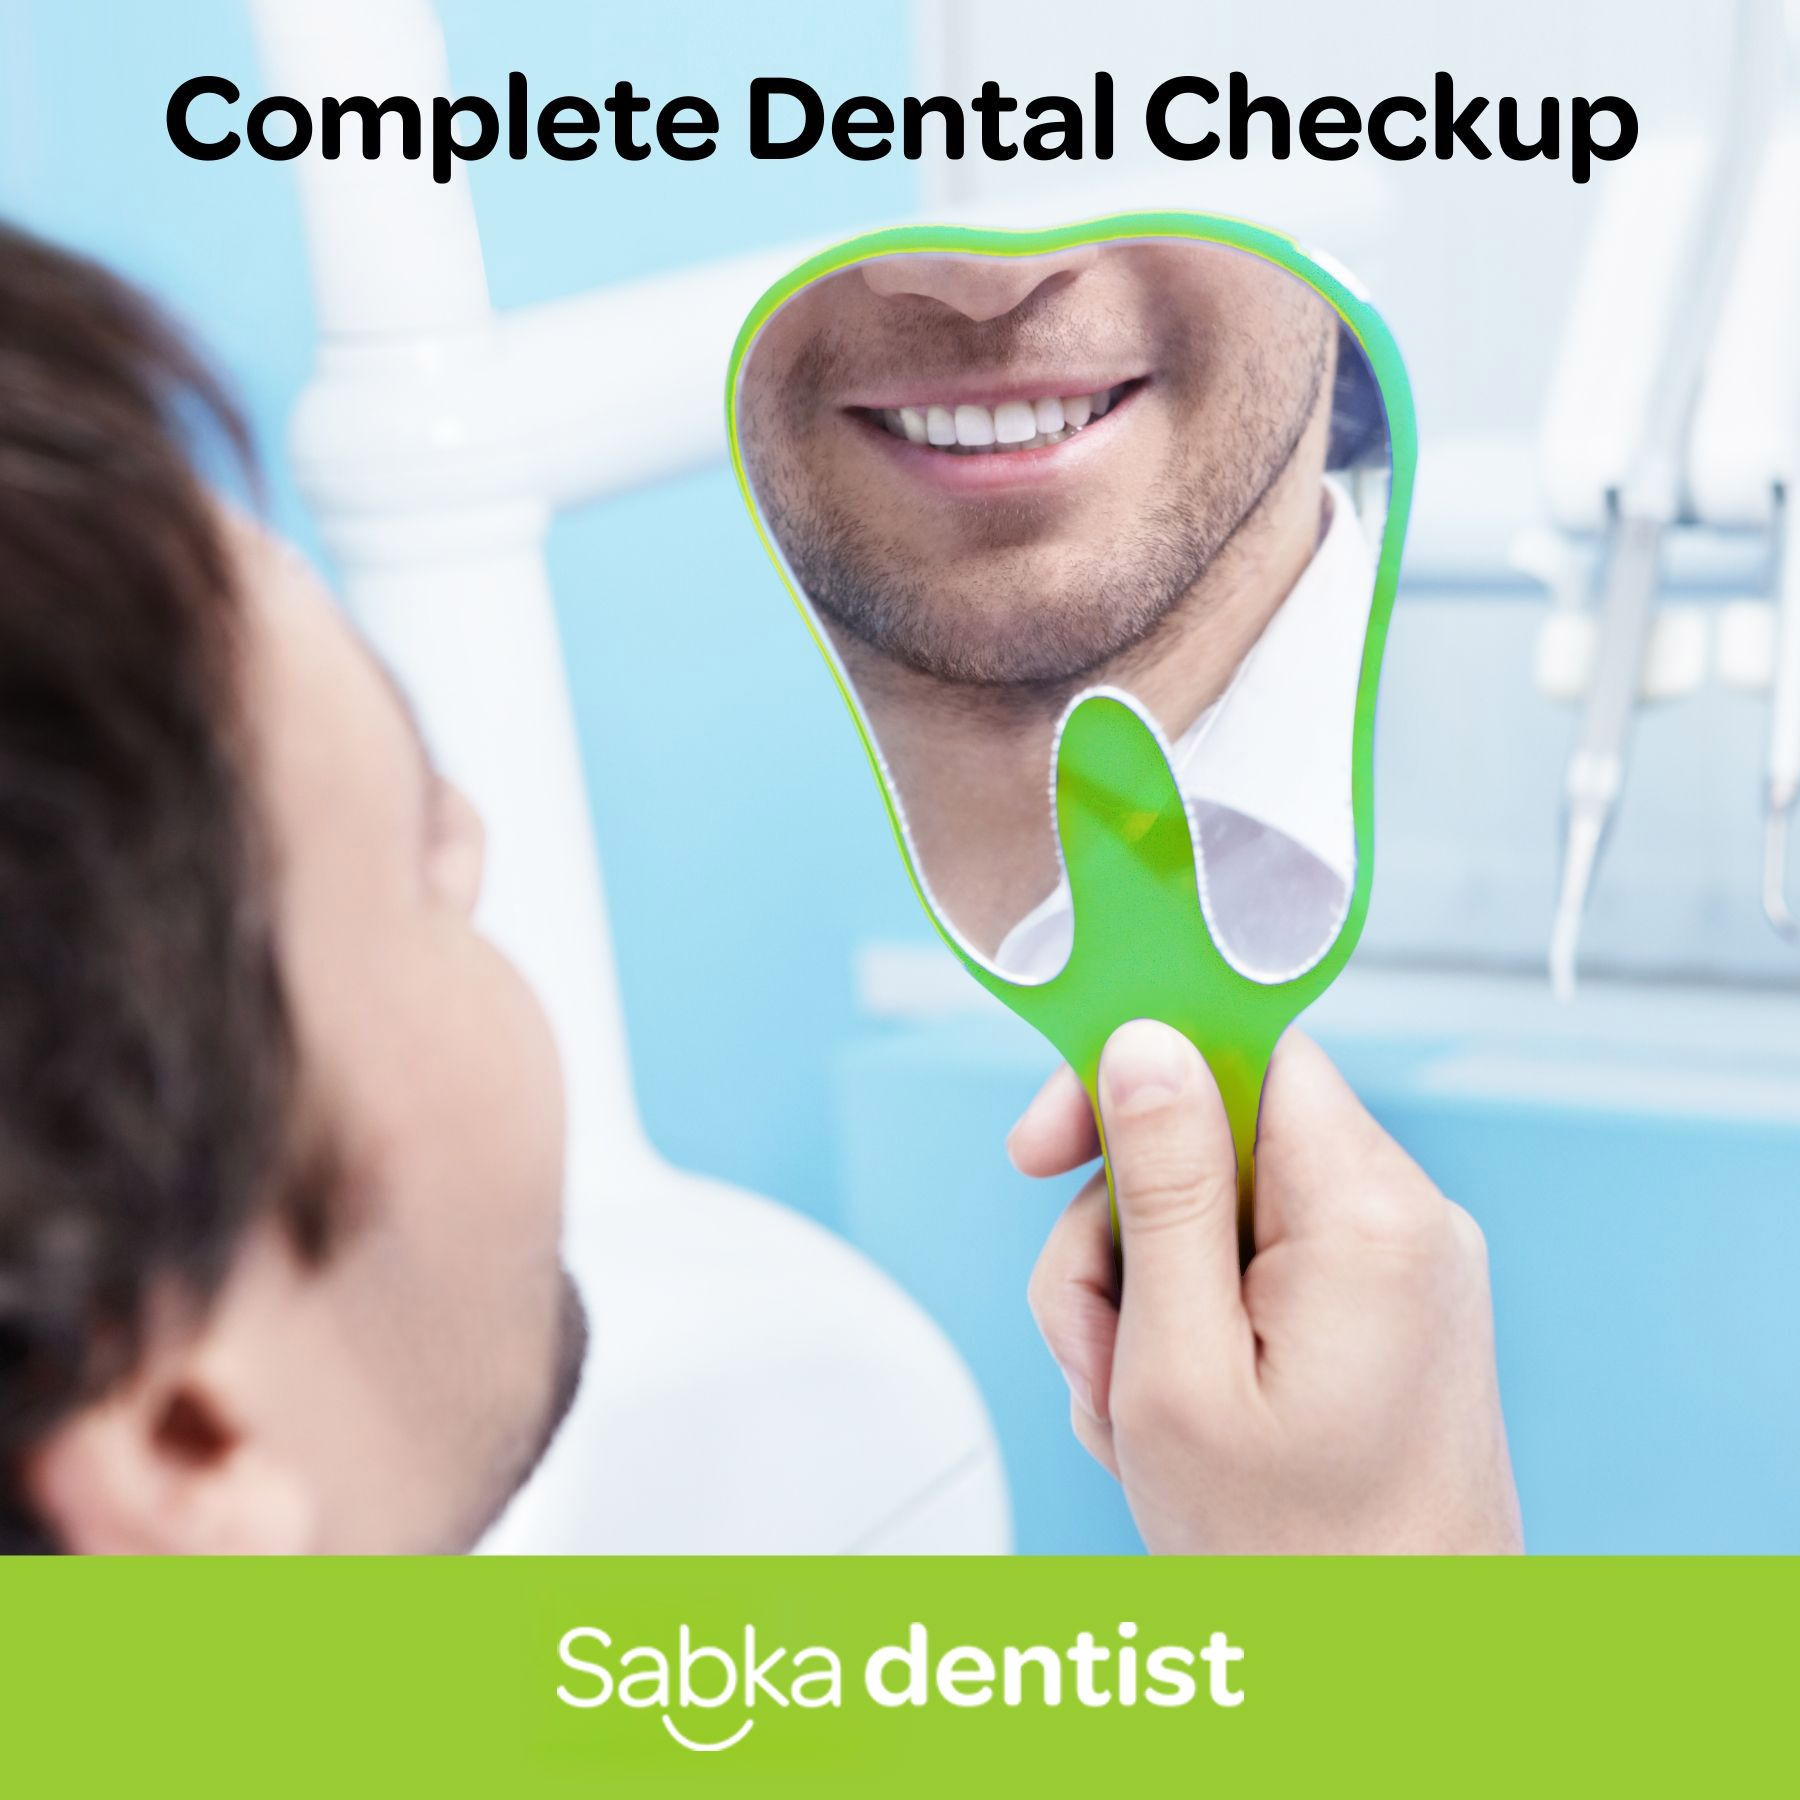 Pin on Dental Services